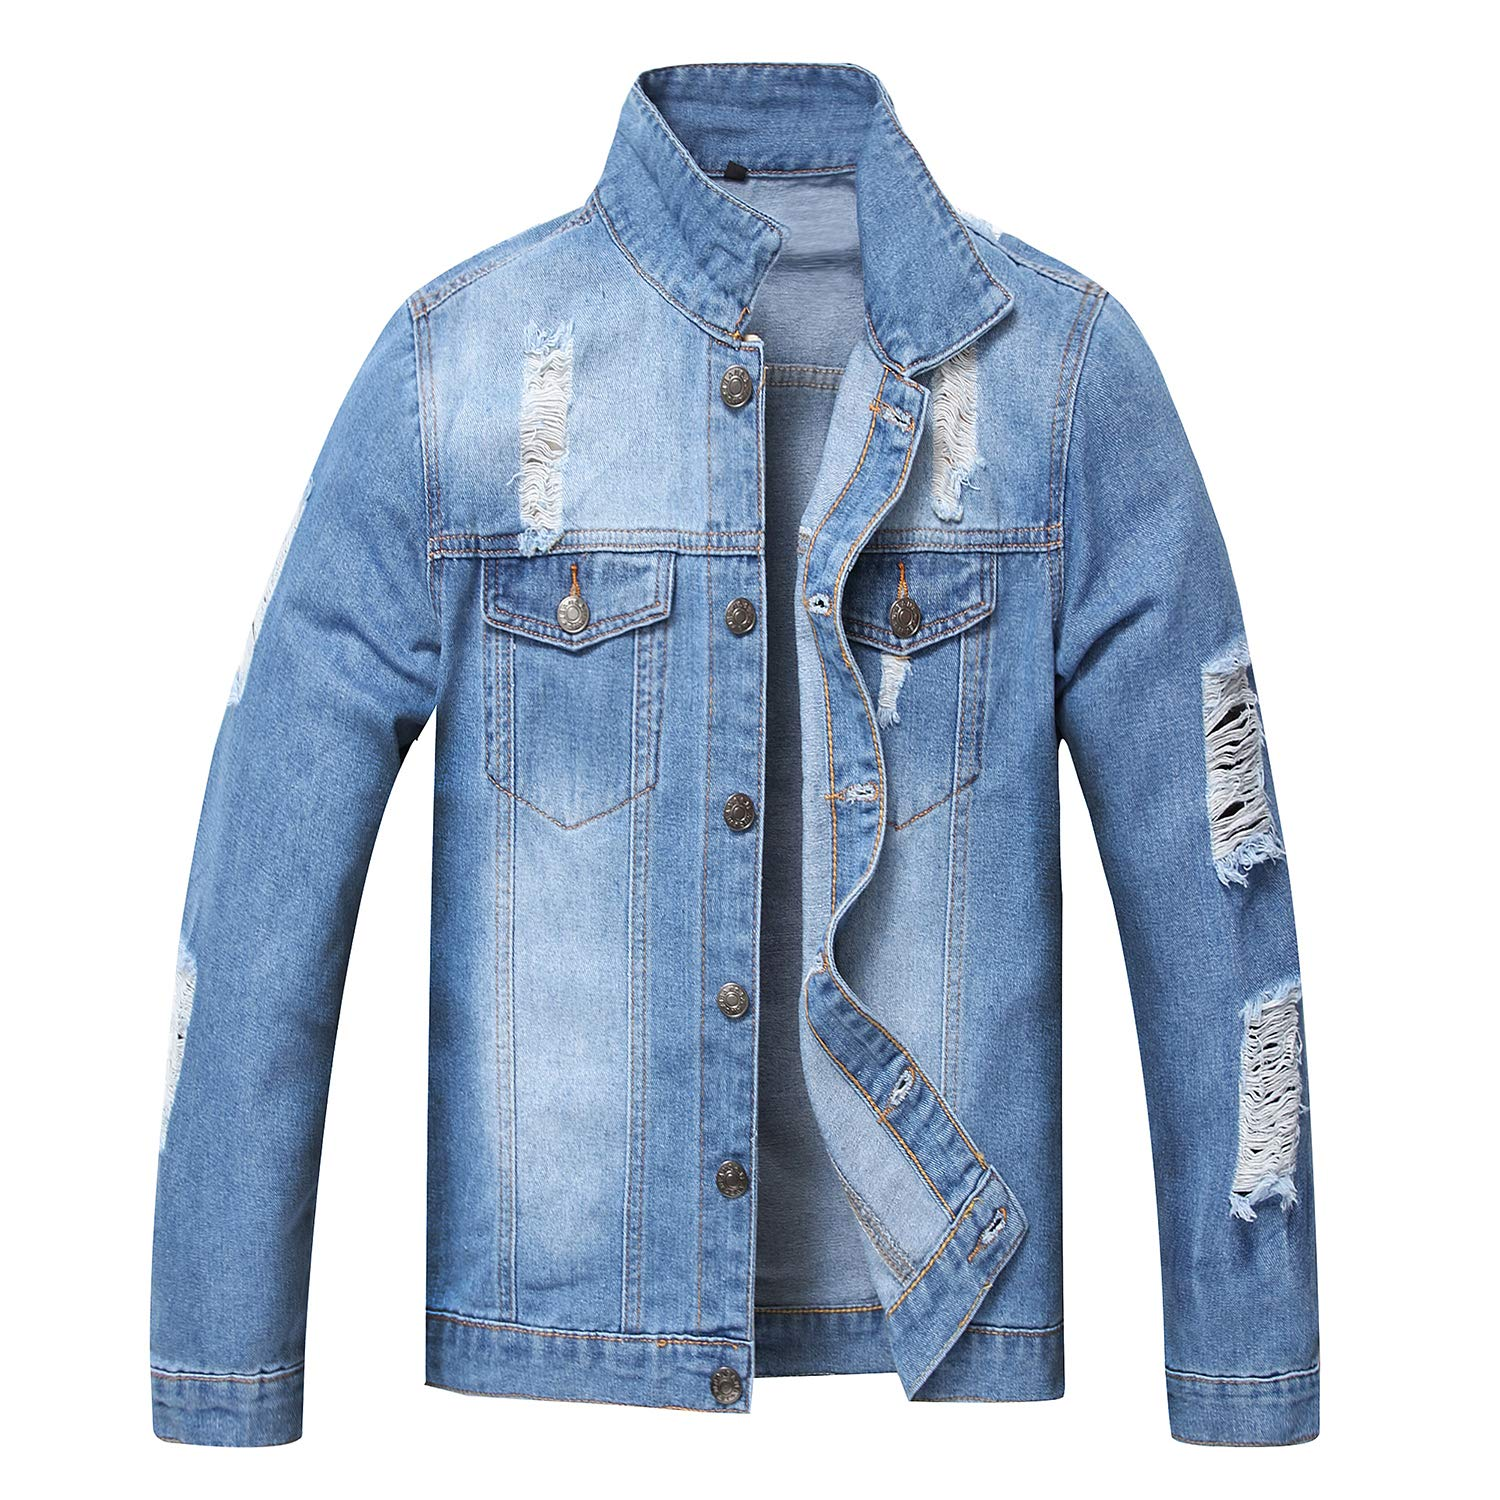 JYHER Men's Denim Jacket,Classic Ripped Slim Jean Coat Jacket with Holes by JYHER